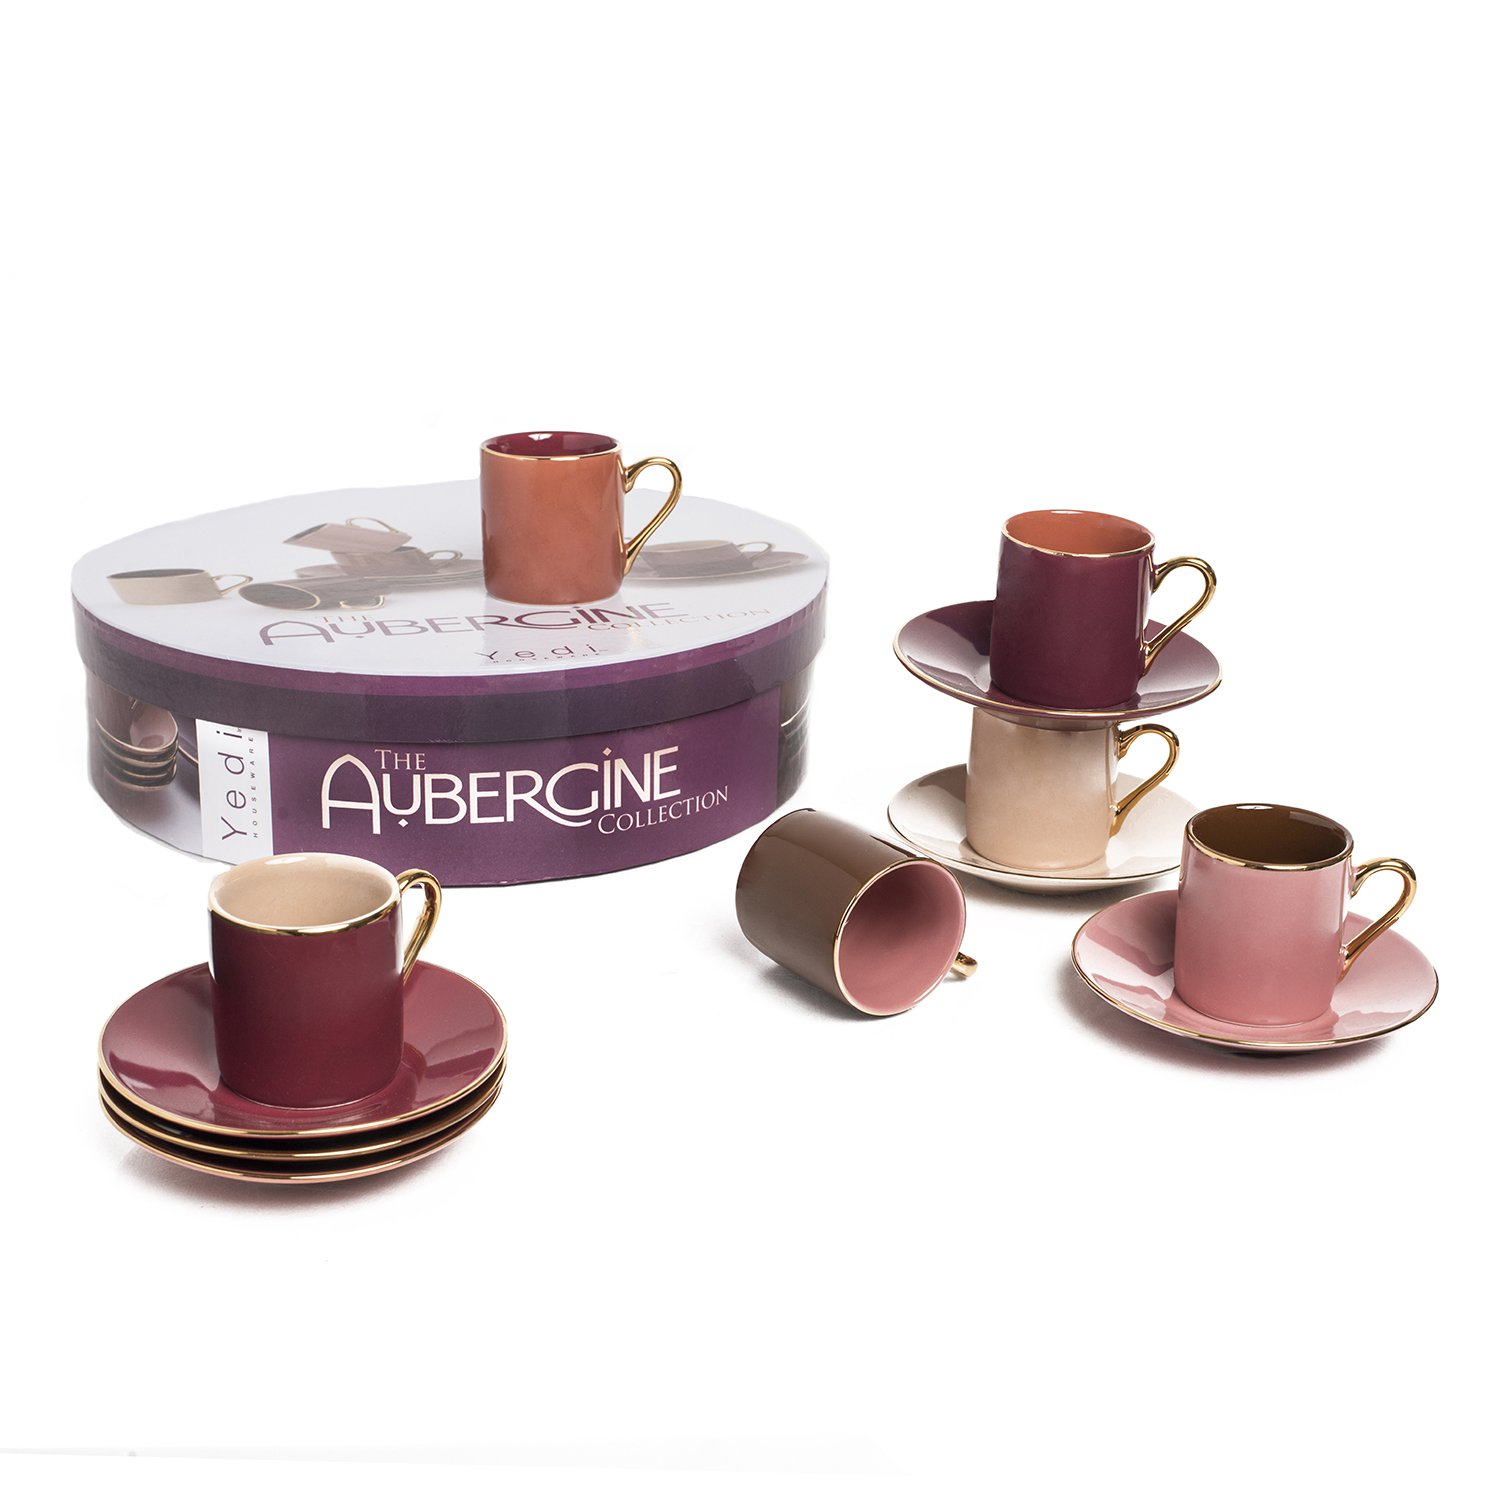 Set of 6 by Yedi Houseware Premium Quality Porcelain In Stylish Espresso Coffee Cups with Matching Saucers Siena Colors for the Perfect Italian Espresso Experience Stunning Hostess Gift Idea 2 /½ oz CC335